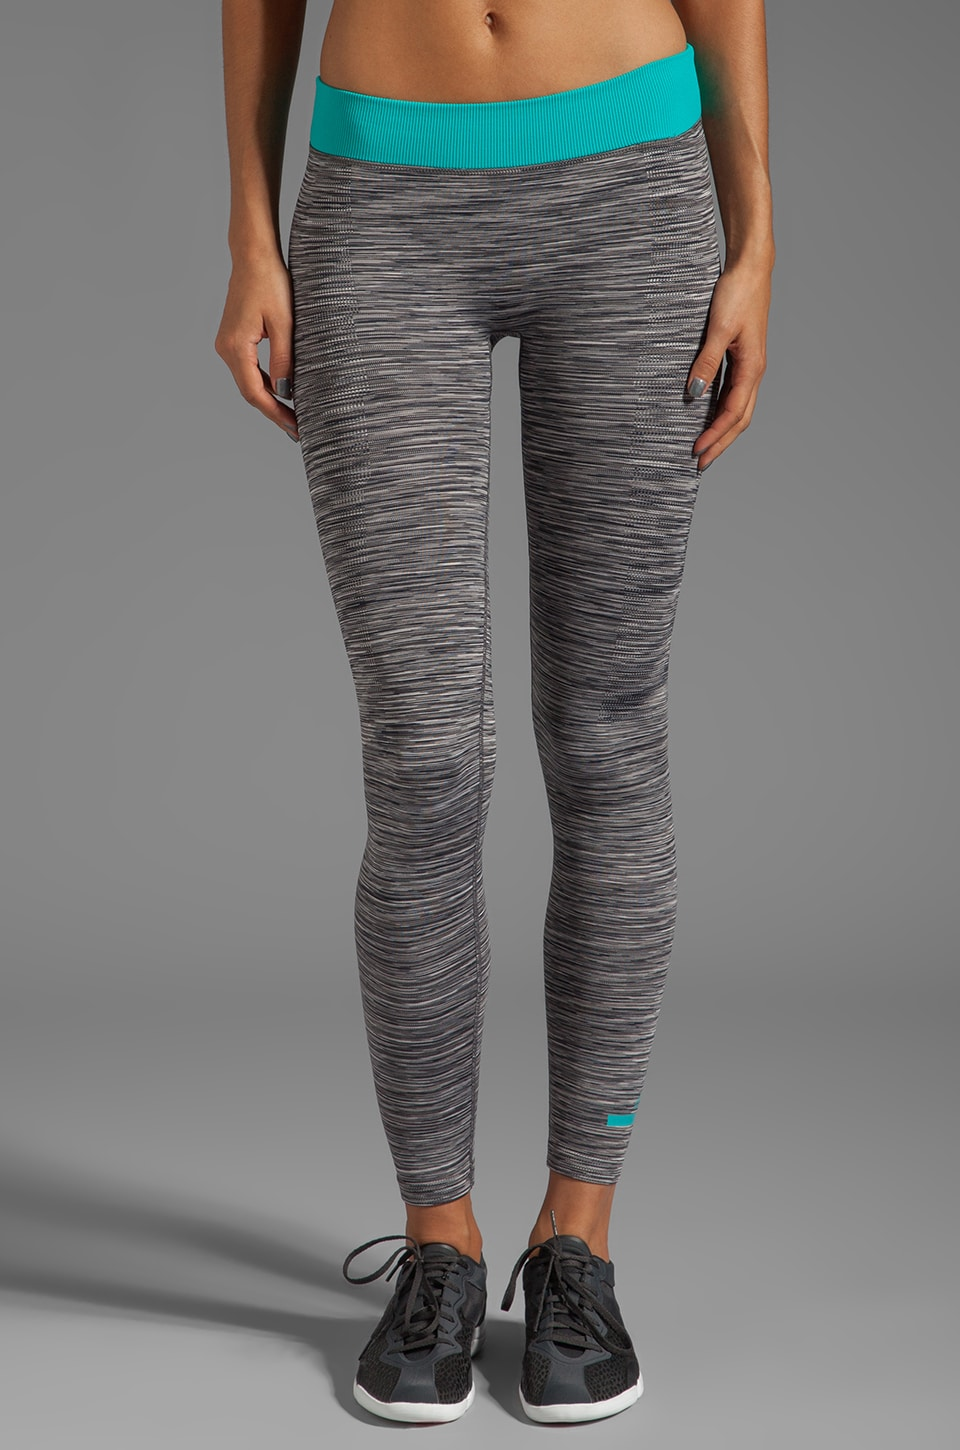 adidas by Stella McCartney YO SL 7/8 Tight Legging in Sharp Grey/Multicolor/Ultra Green